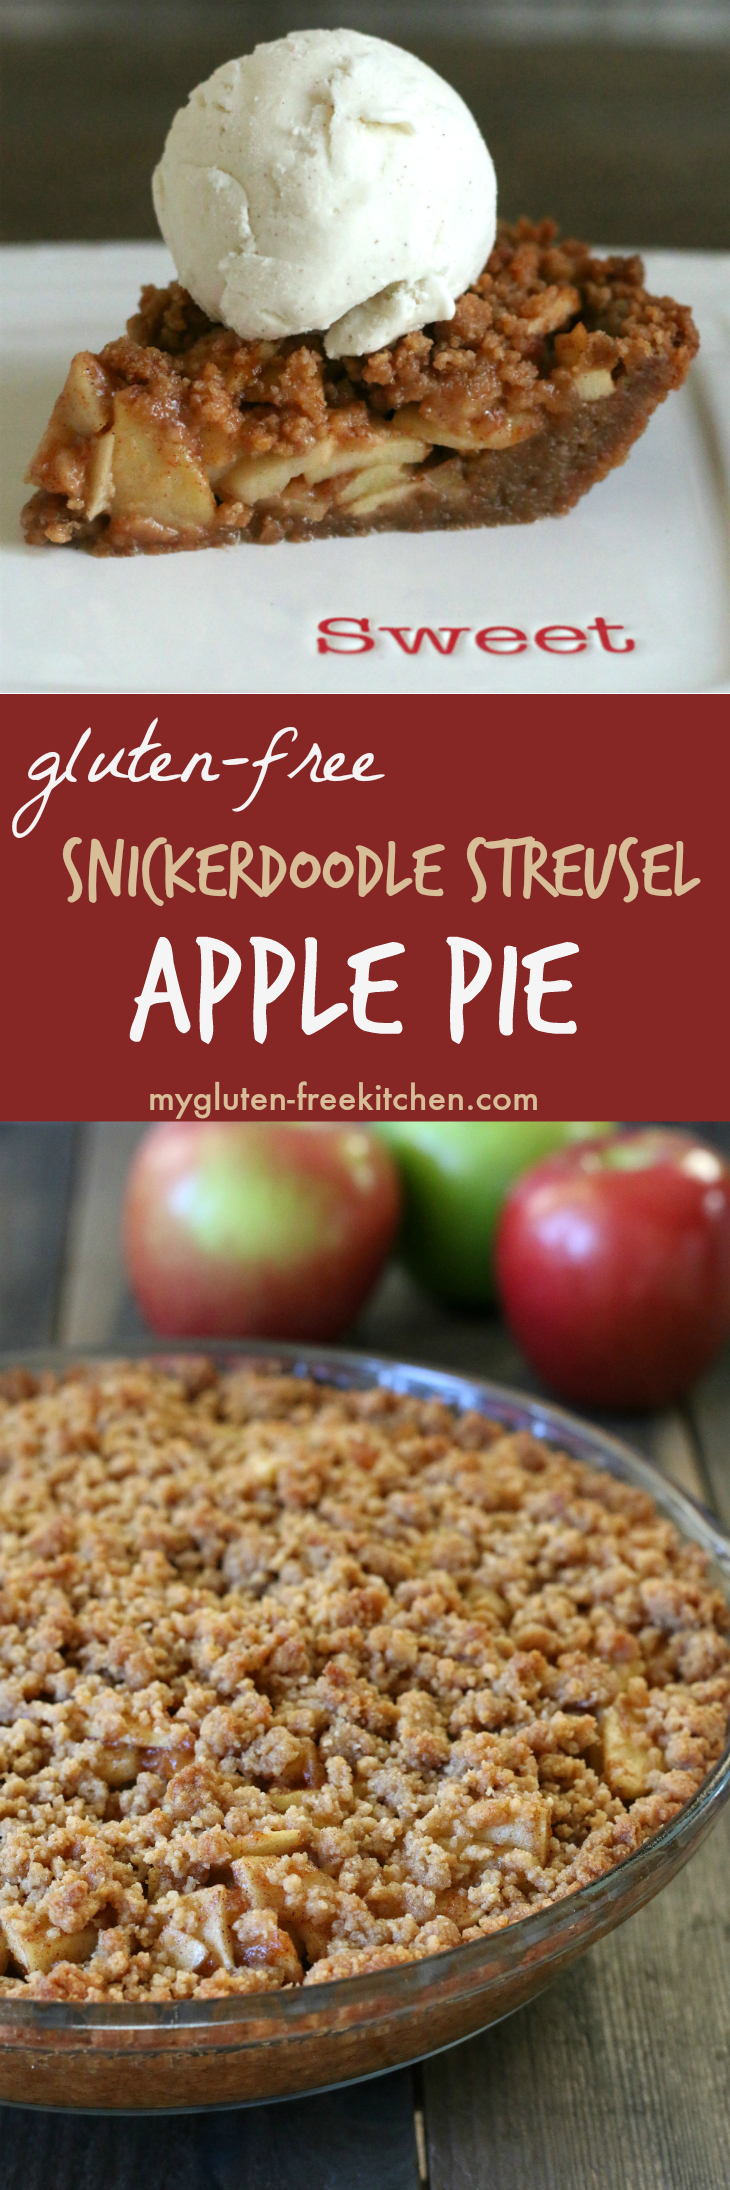 Gluten-free Apple Pie with Snickerdoodle Streusel. Amazing pie recipe!! I never liked apple pie until I had this one!